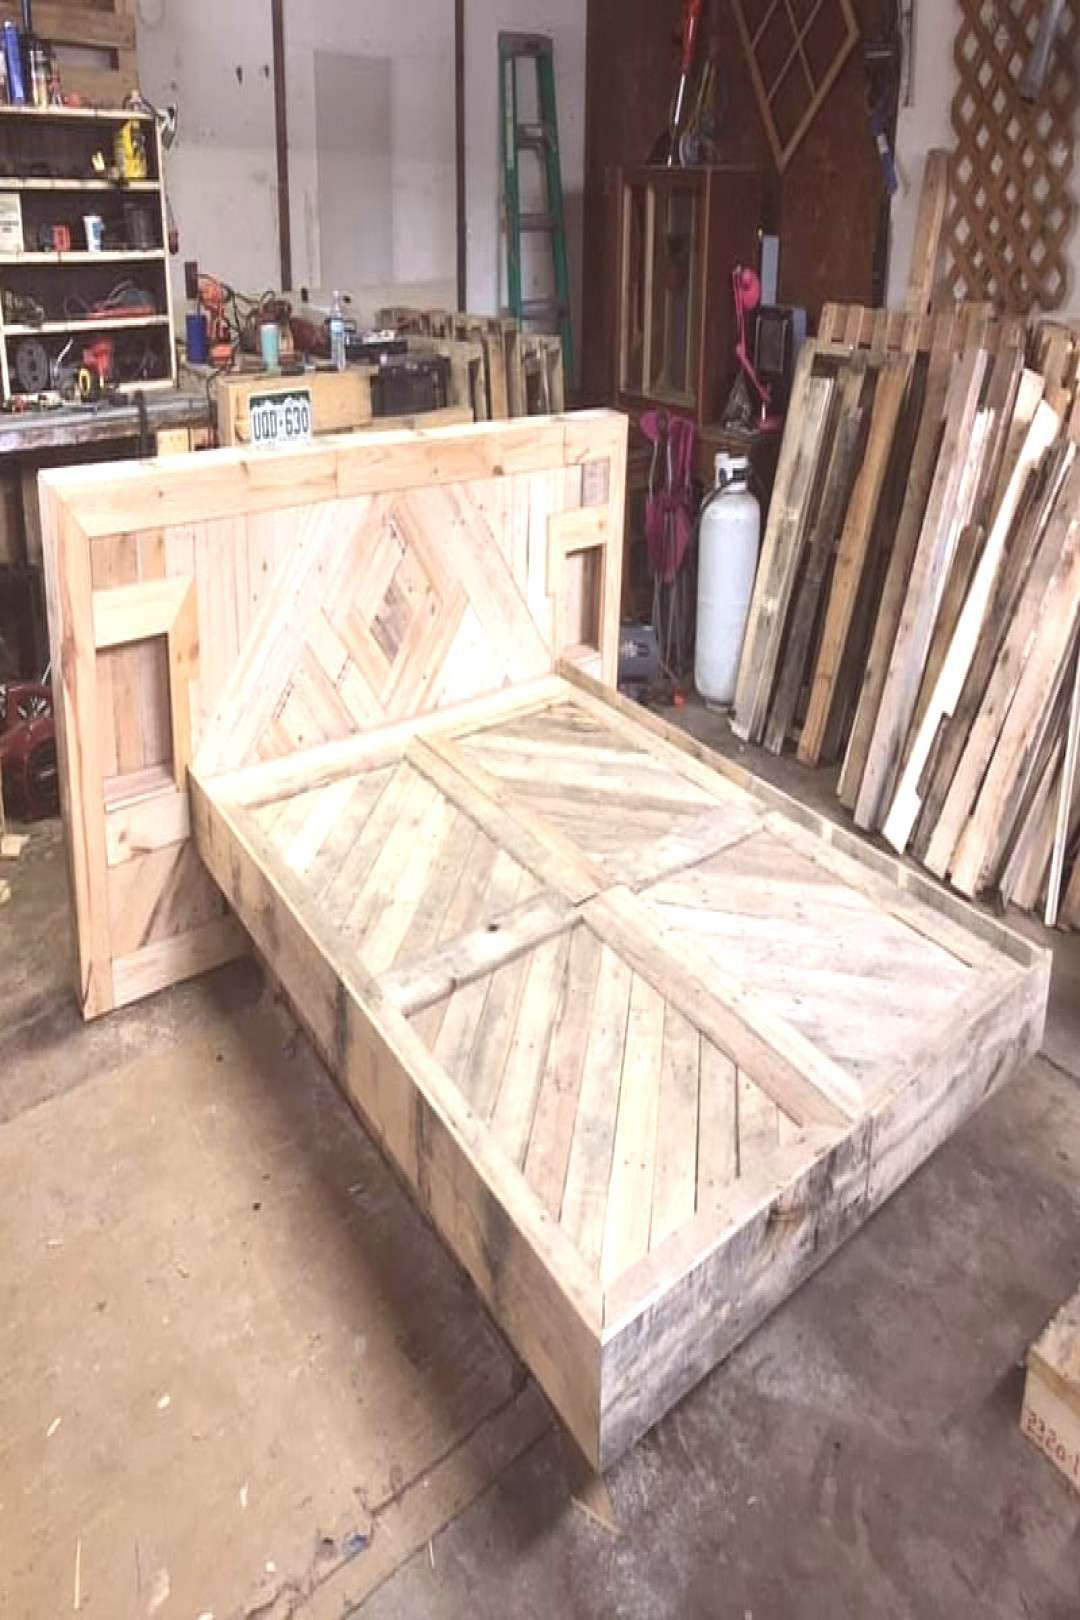 #stunning #upcycled #progress #creative #indoor #check #work #stai #out #the #in #a A stunning upcycled work in progress, check out the creative staiYou can find Platform beds and more on our website.A stunning upcycled work in ...